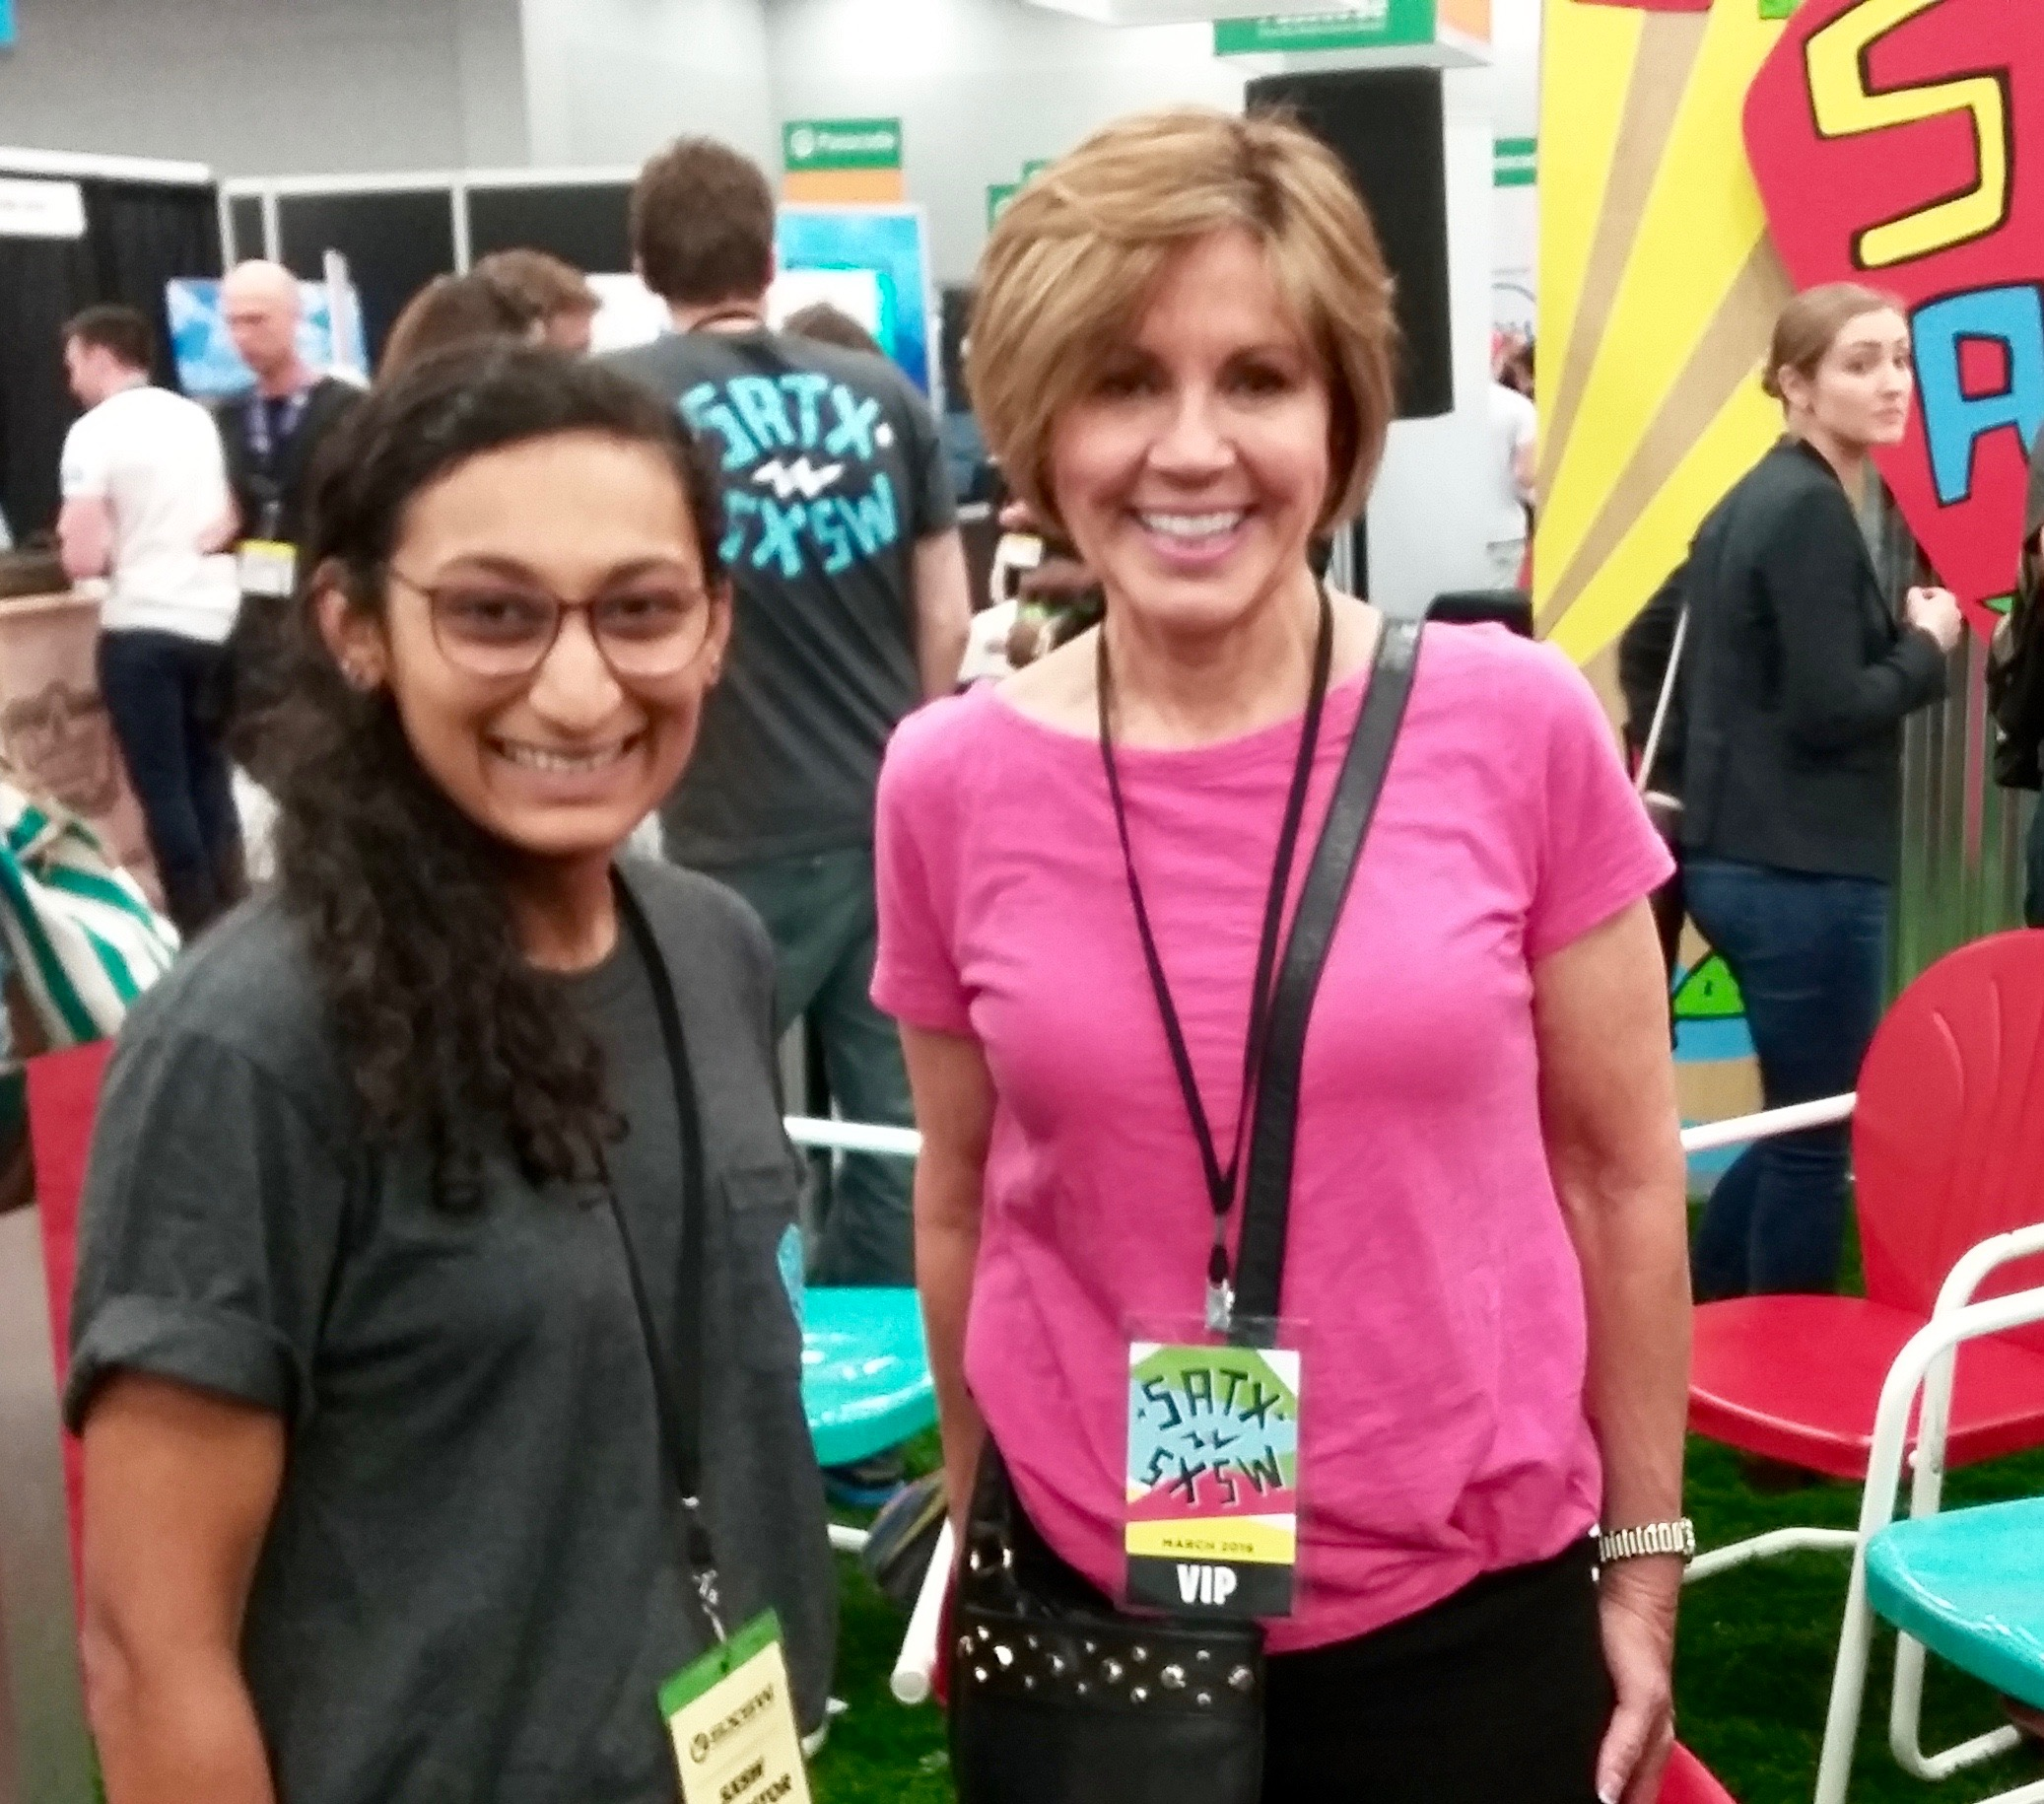 San Antonio City Manager Sheryl Sculley (right) visits the Choose San Antonio space at the South by Southwest trade show on Sunday, March 13, 2016. At left is Hetali Lodaya, a volunteer at the space. Photo by Edmond Ortiz